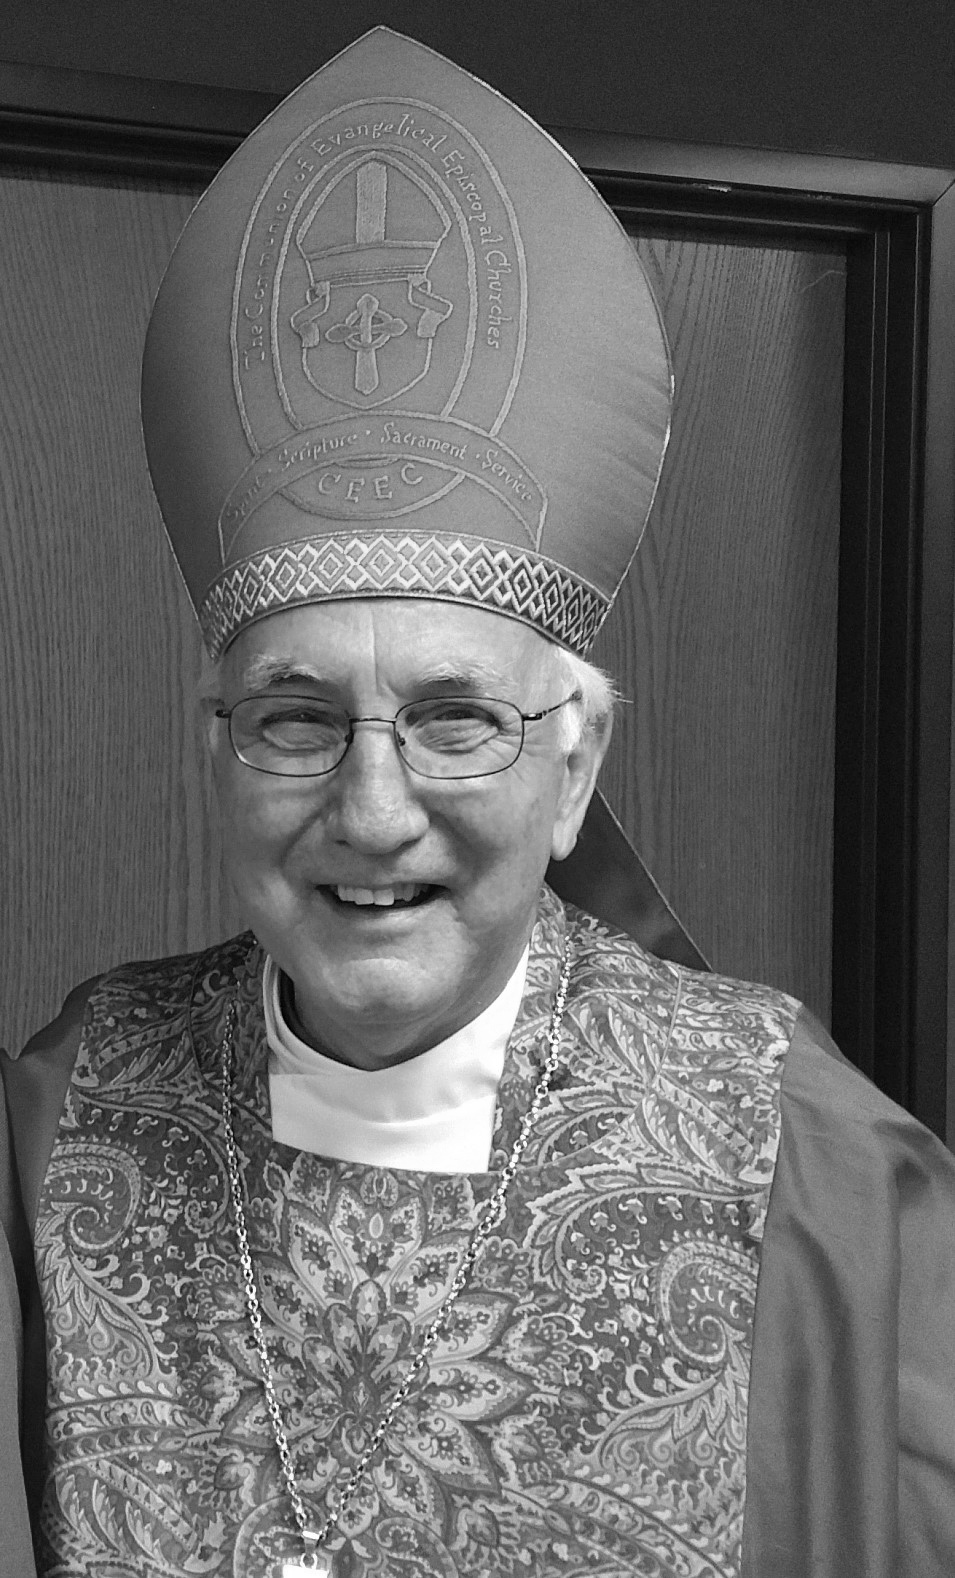 Archbishop Charles Travis